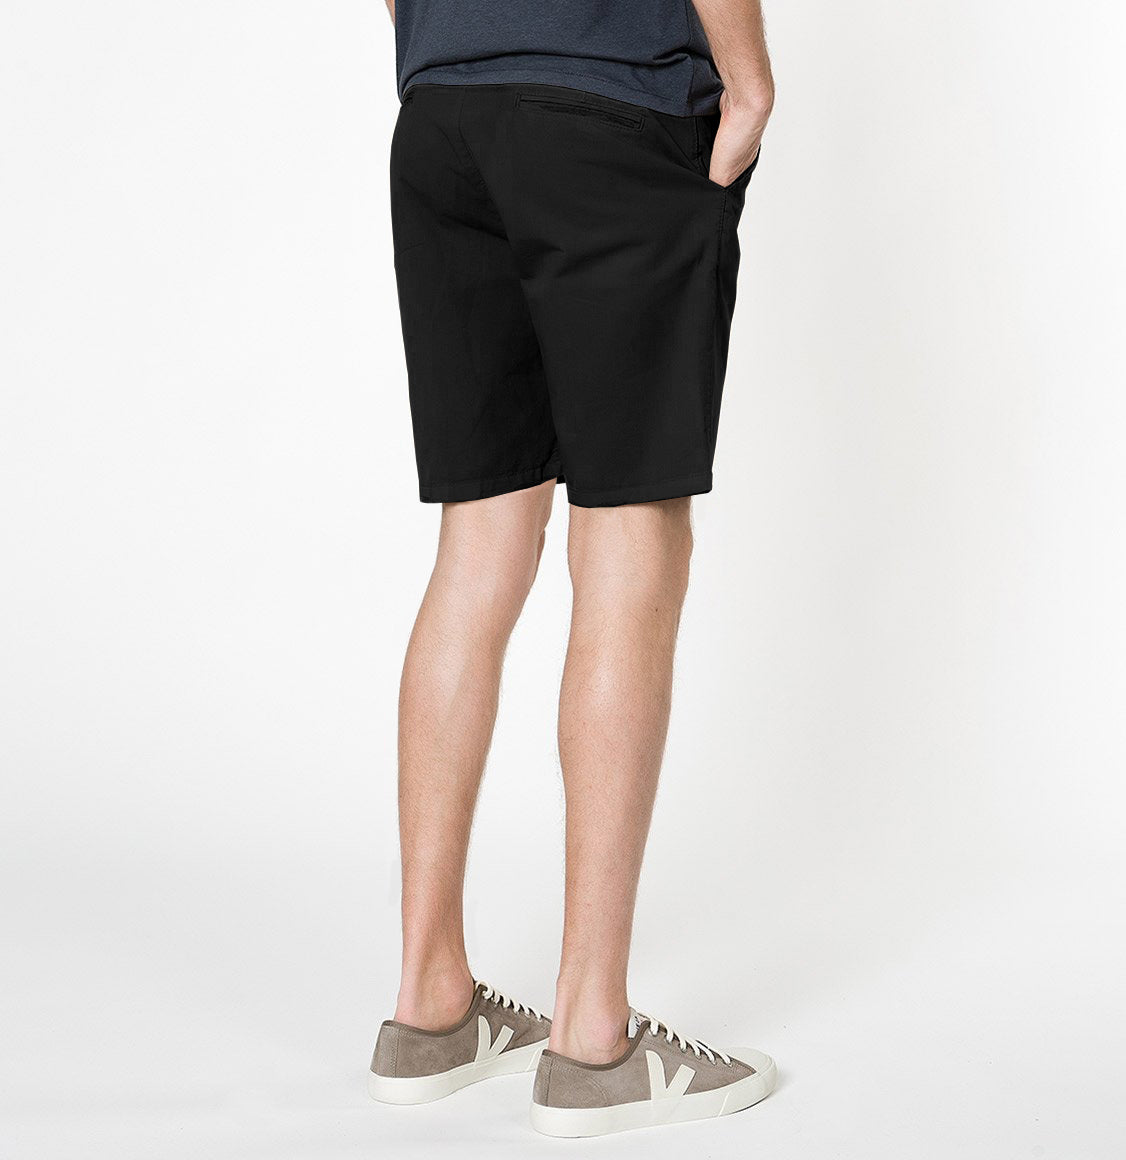 Cotton Blend Distressed Shorts Black | The Project Garments - C